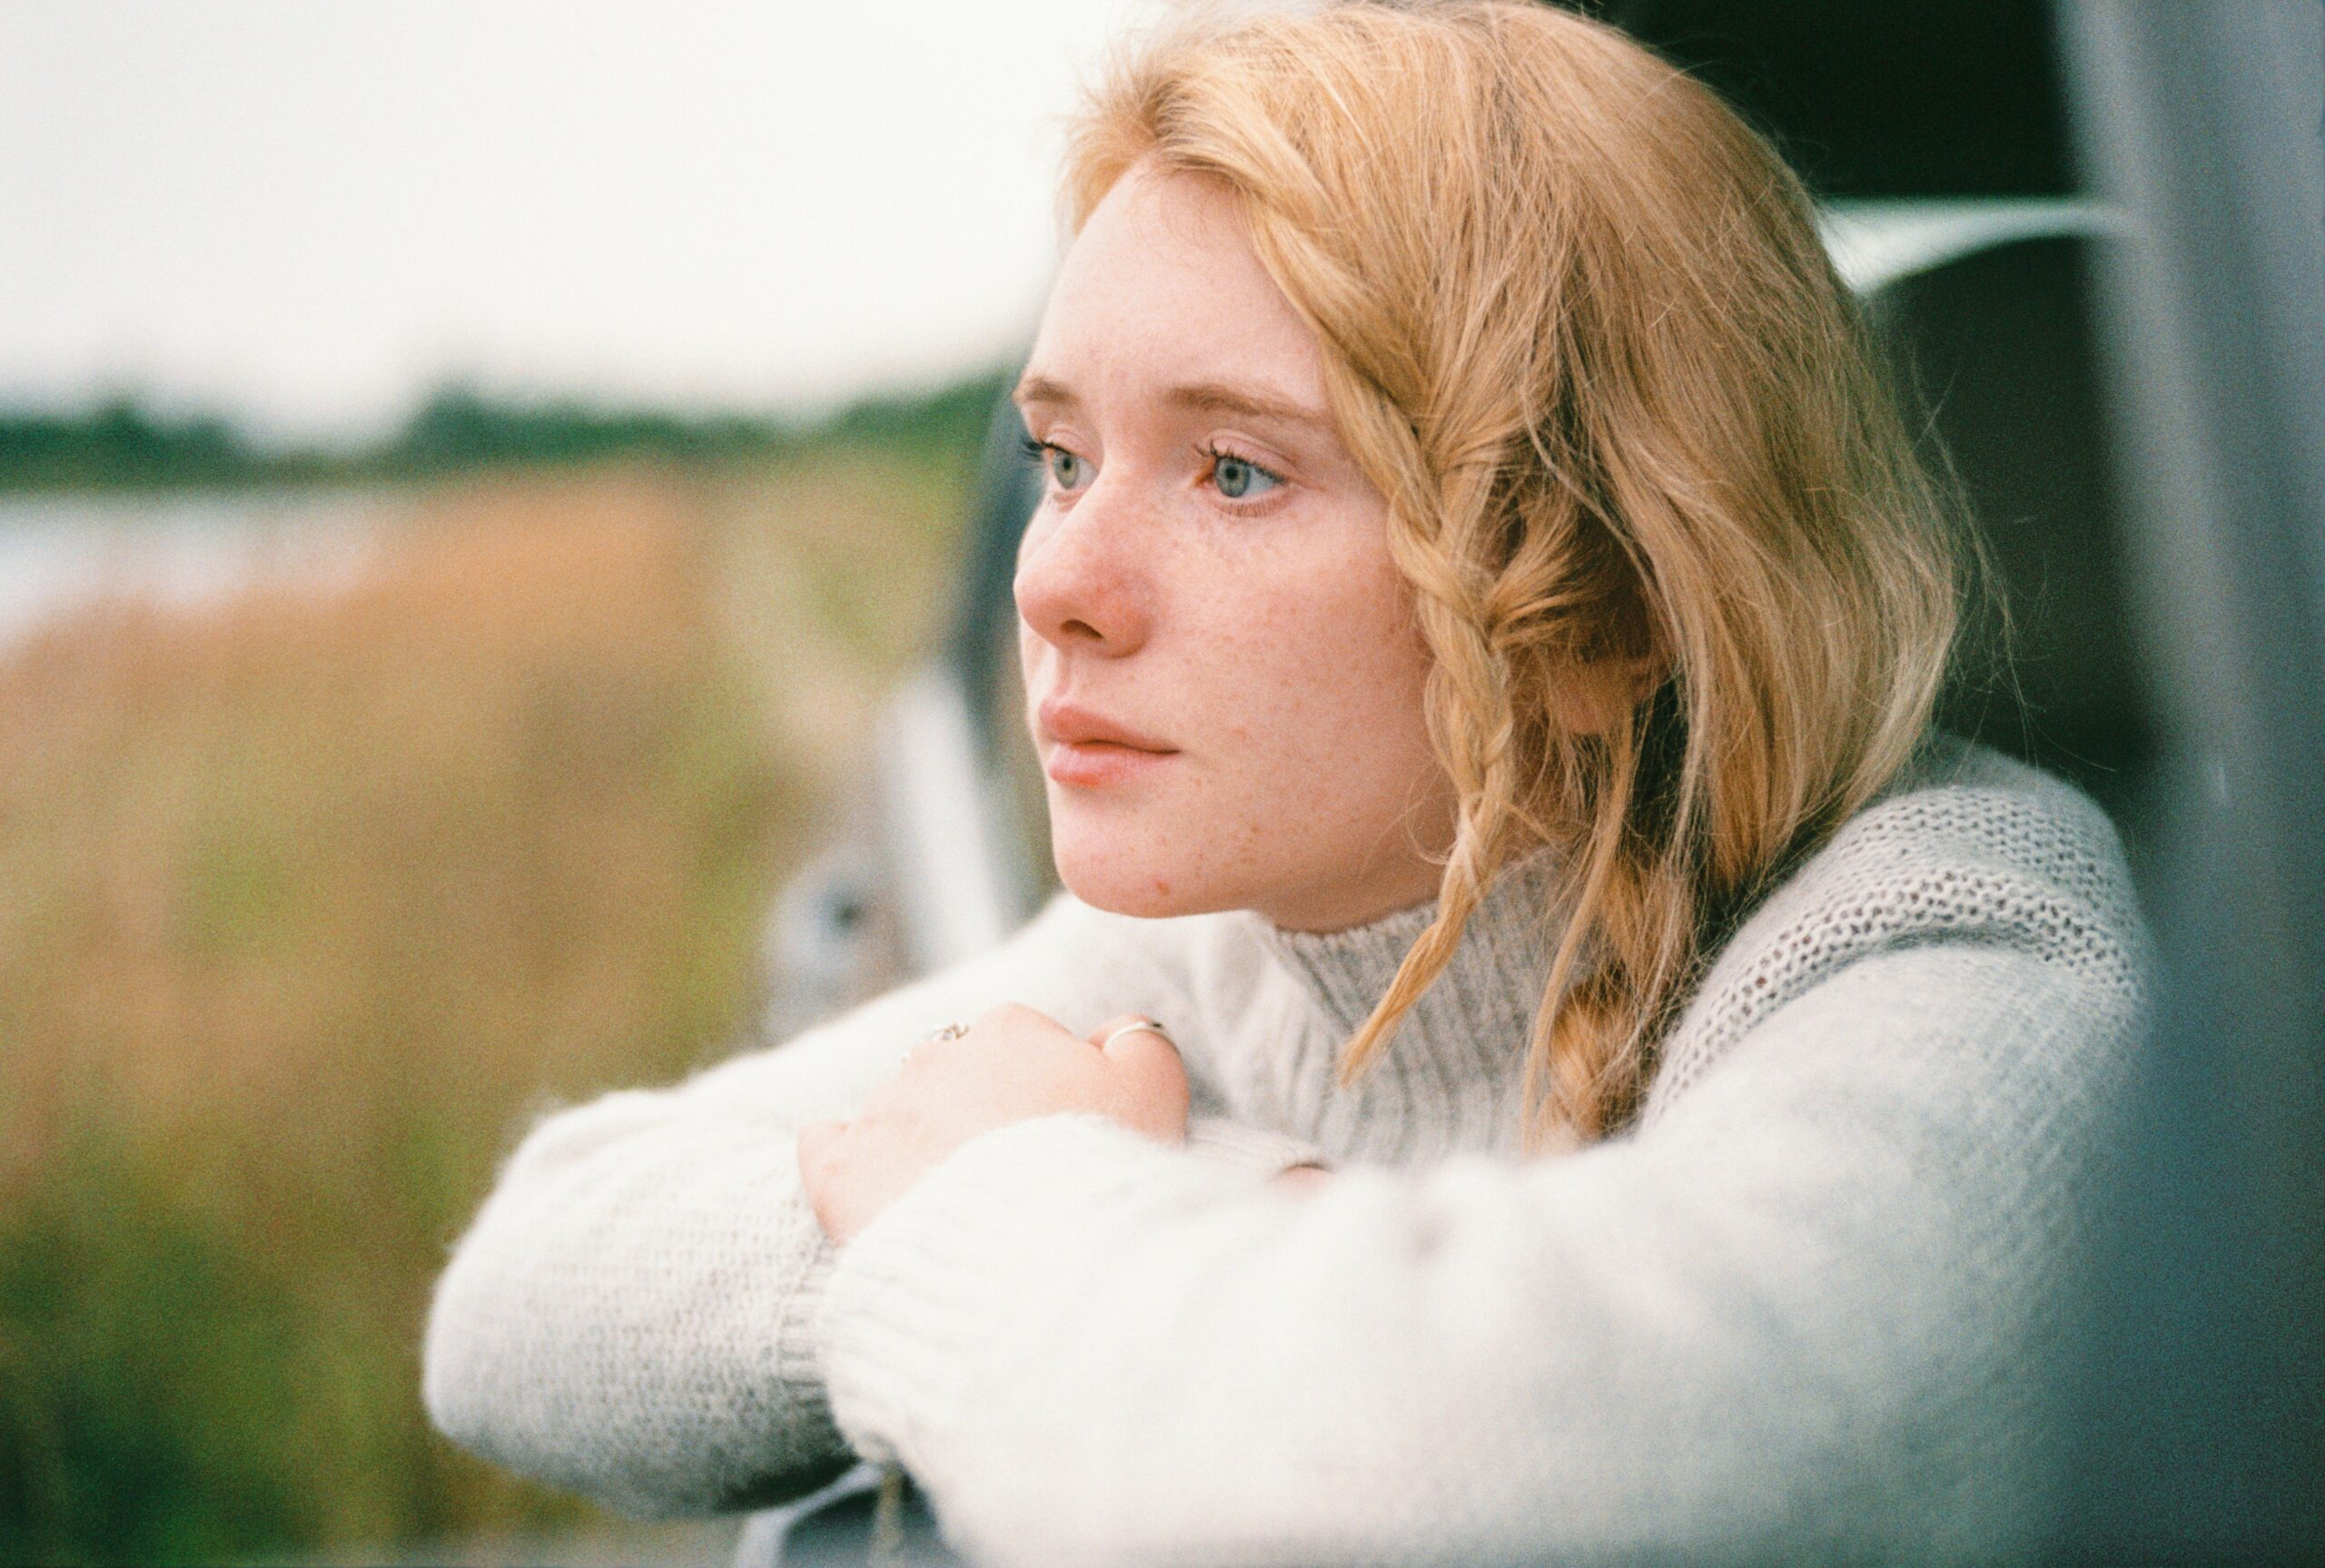 A Young Woman Gazing Out